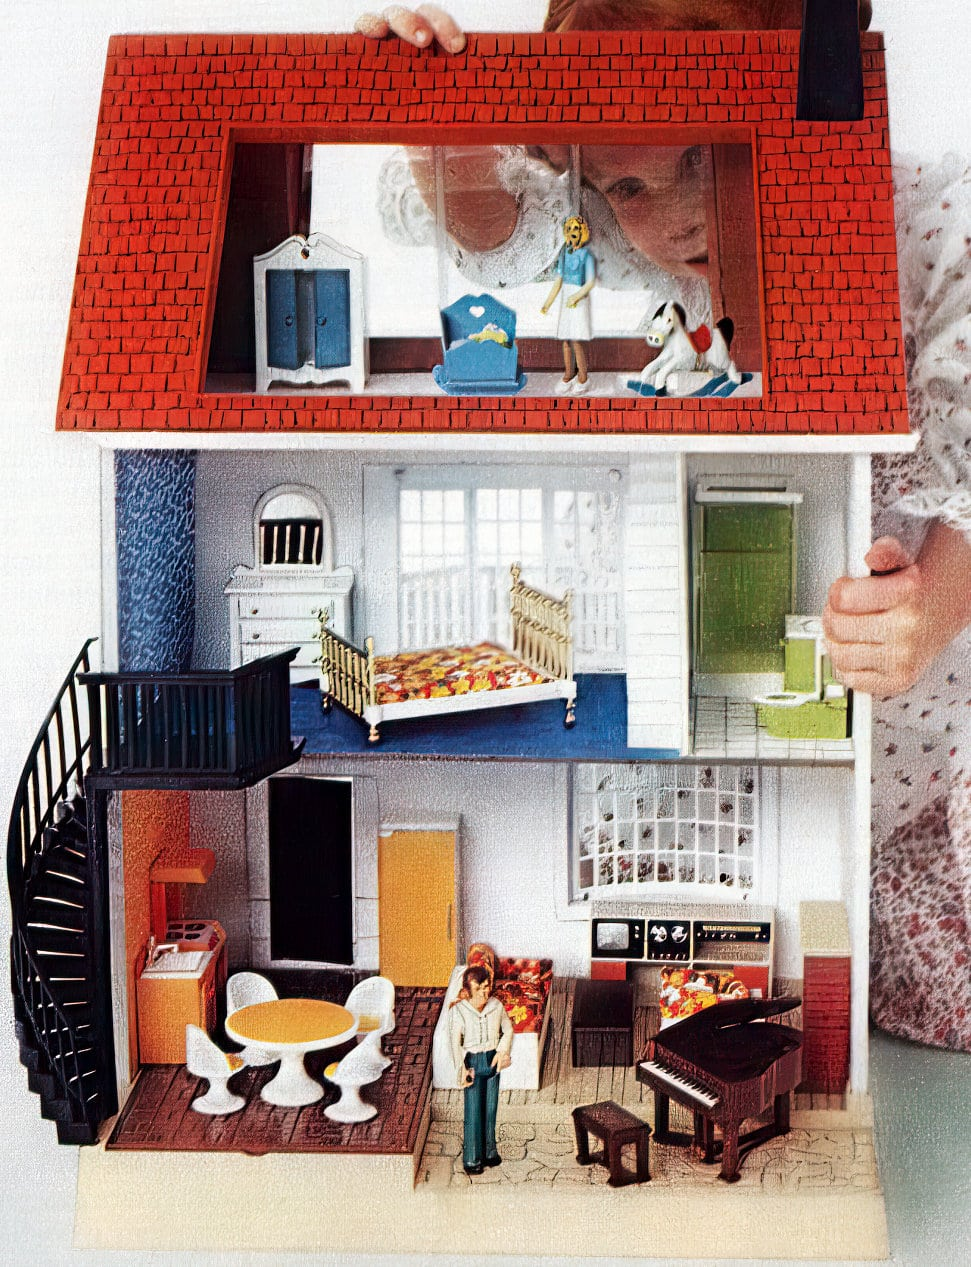 Vintage Fisher-Price toy dollhouse